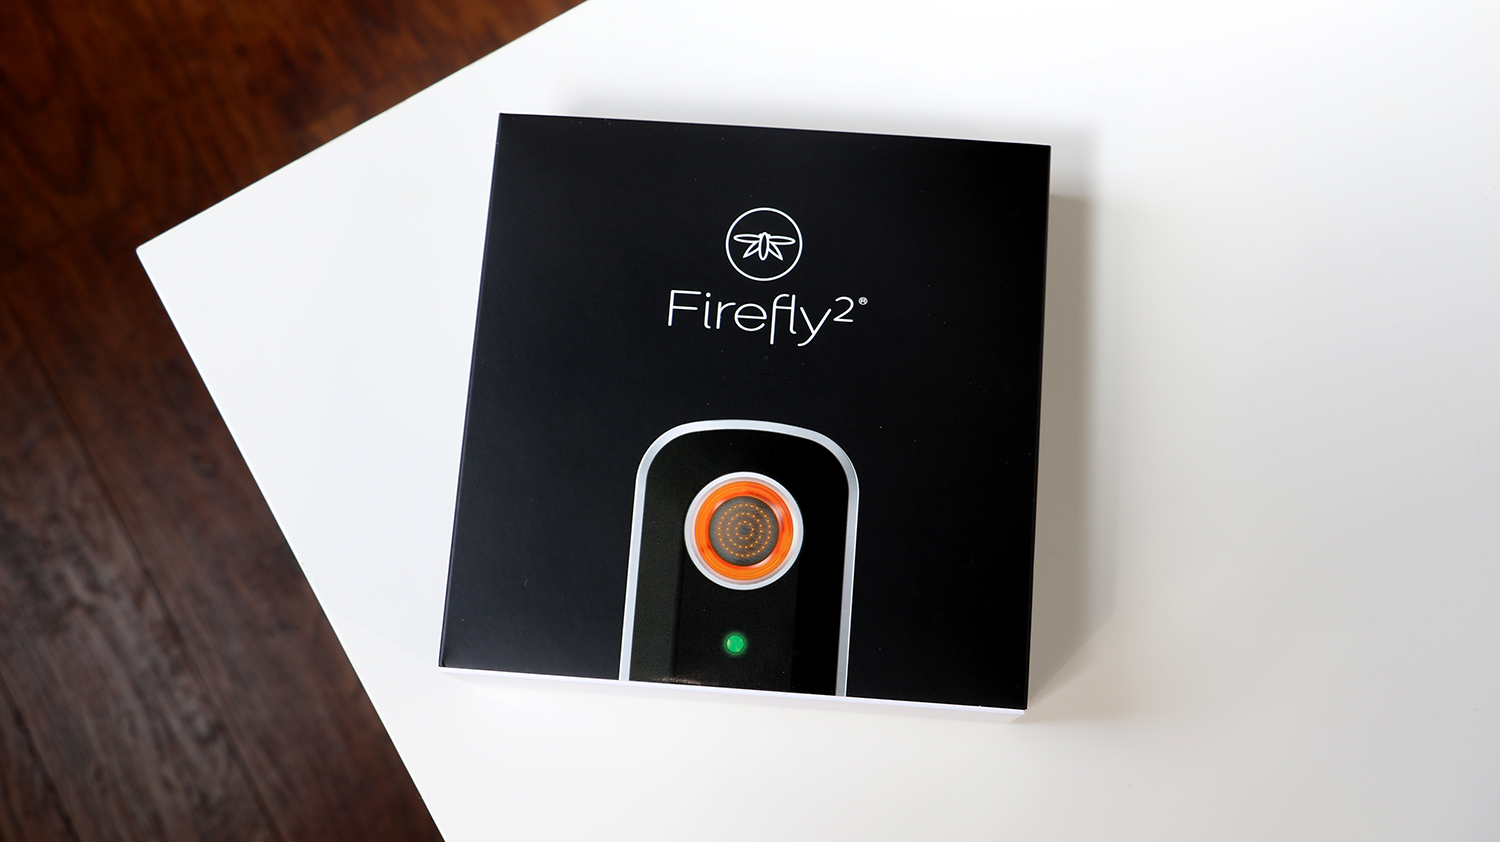 Firefly 2 packaging reviewed by Vape Pen Pro